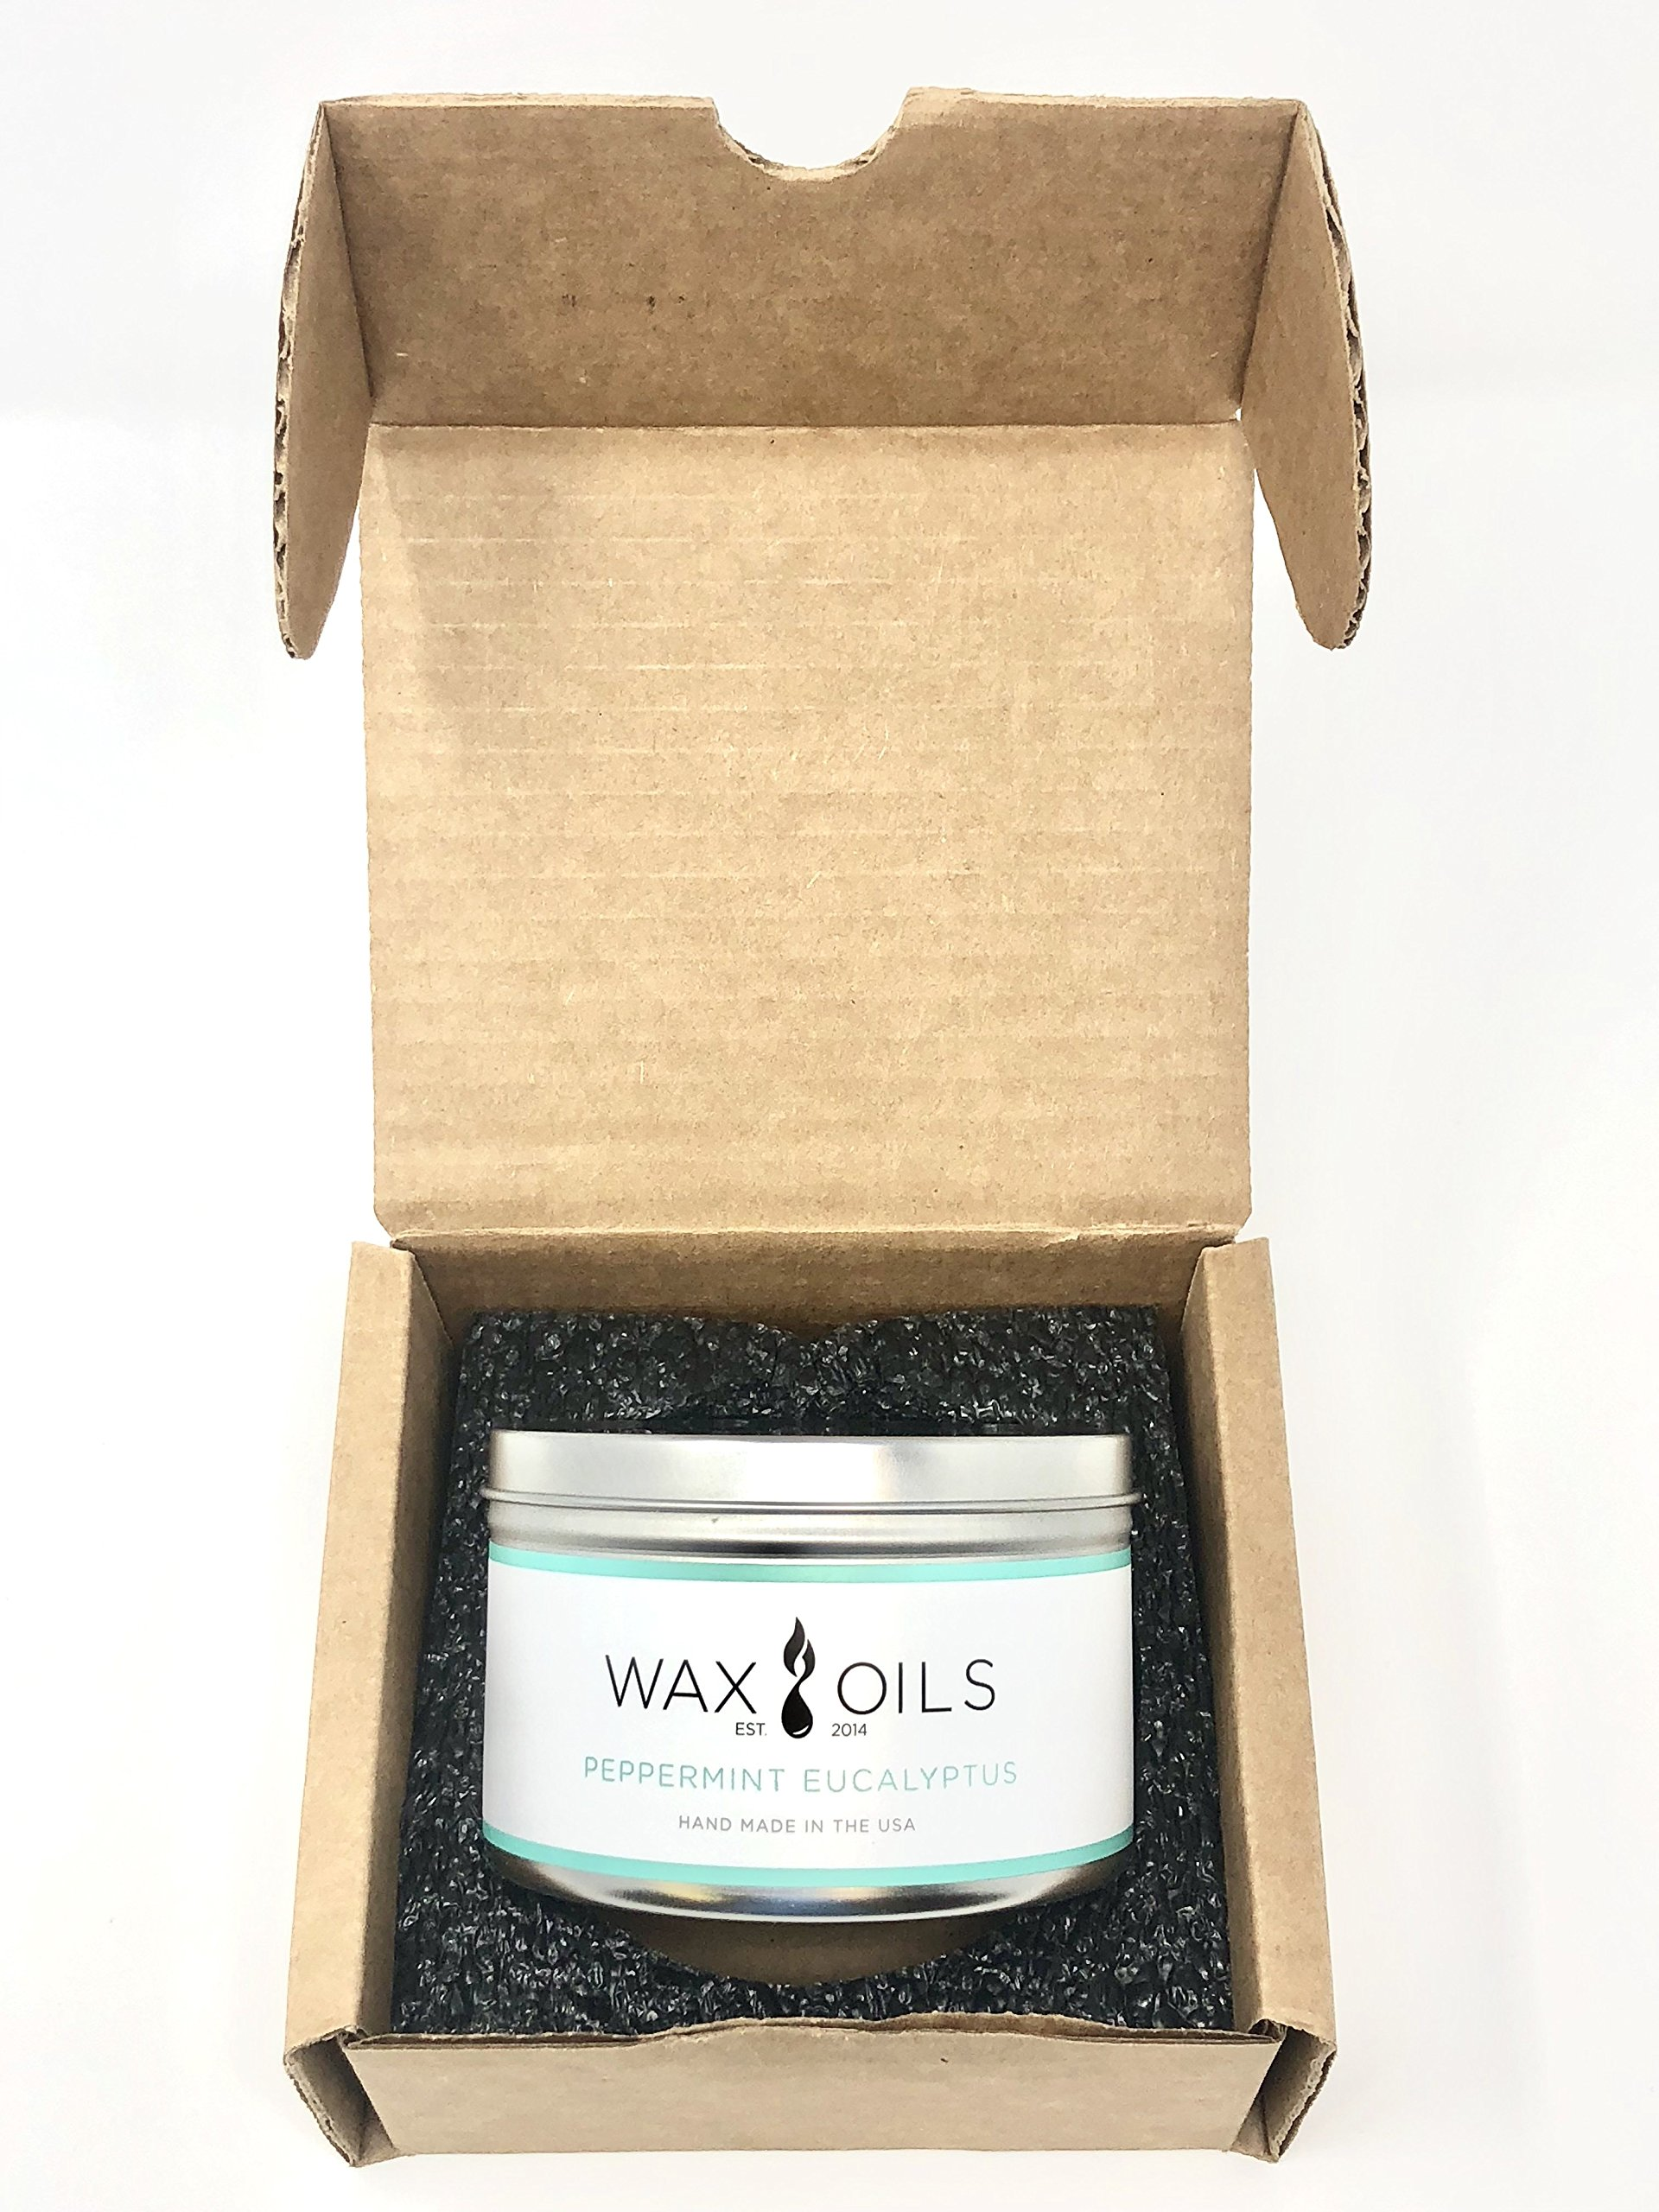 Wax and Oils Soy Wax Aromatherapy Scented Candles (Peppermint) 16 Oz. - PEPPERMINT EUCALYPTUS 16oz - Just inhaling peppermint essential oil can help clear your head and your thoughts. Made by combining the essential oils, Cedarwood, Eucalyptus, Patchouli and Peppermint. It also known to clear up sinuses and help with coughs, this blend produces an effective solution to any of these discomforts. A sweet minty eucalyptus, pleasing and soothing. HANDMADE IN THE USA - with Soy Wax and Cotton Core Wicks. Each candle is hand poured with only premiumWax & Oils.Our candles are 100% Soy based.They do not contain paraffin, petroleum, animal or beeswax products. ECO-FRIENDLY - Wax & Oil candles are free from any harmful chemicals or additives. They contain NO pesticides, NO herbicides, and NO genetically modified materials. Our Packaging is 100% recyclable and the foam inserts are made from 65% recycled ingredients. - living-room-decor, living-room, candles - 91w1exPkRsL -